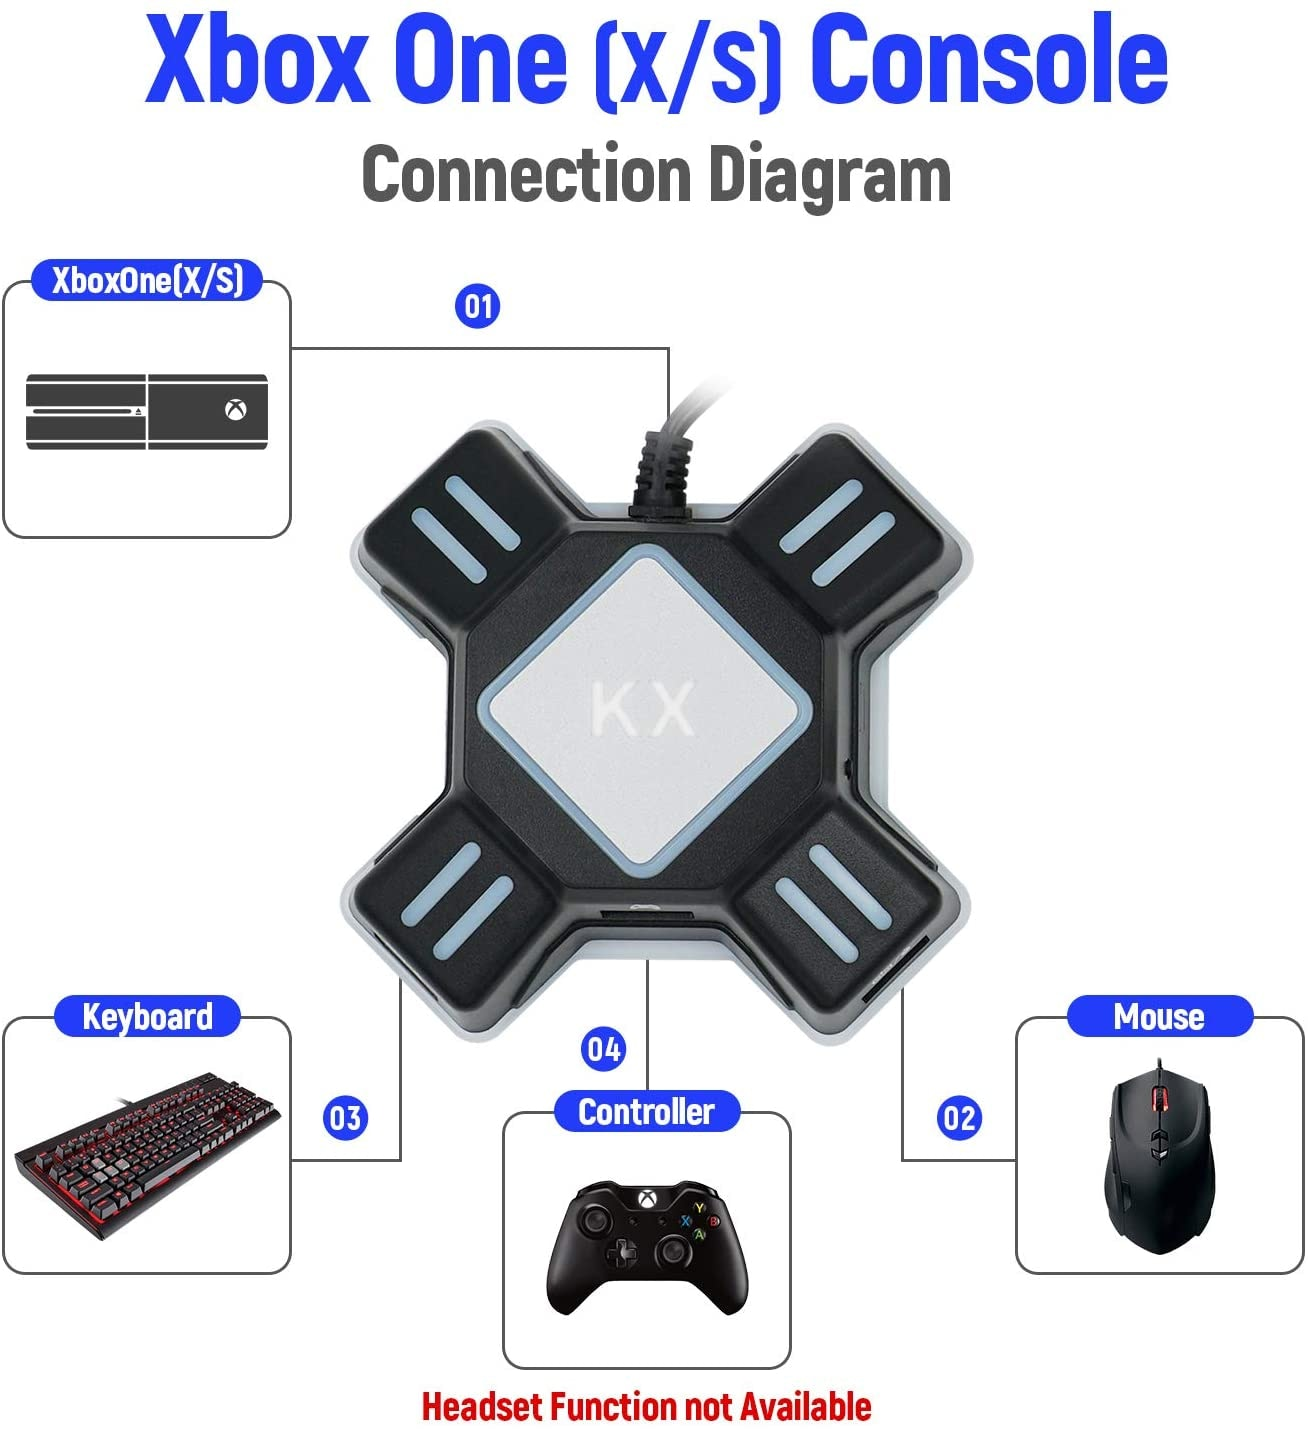 KX USB Game Controllers Adapter Video Game Keyboard & Mouse Converter for Nintend Switch for Xbox One X for PS4/ for PS3 Gaming - 3